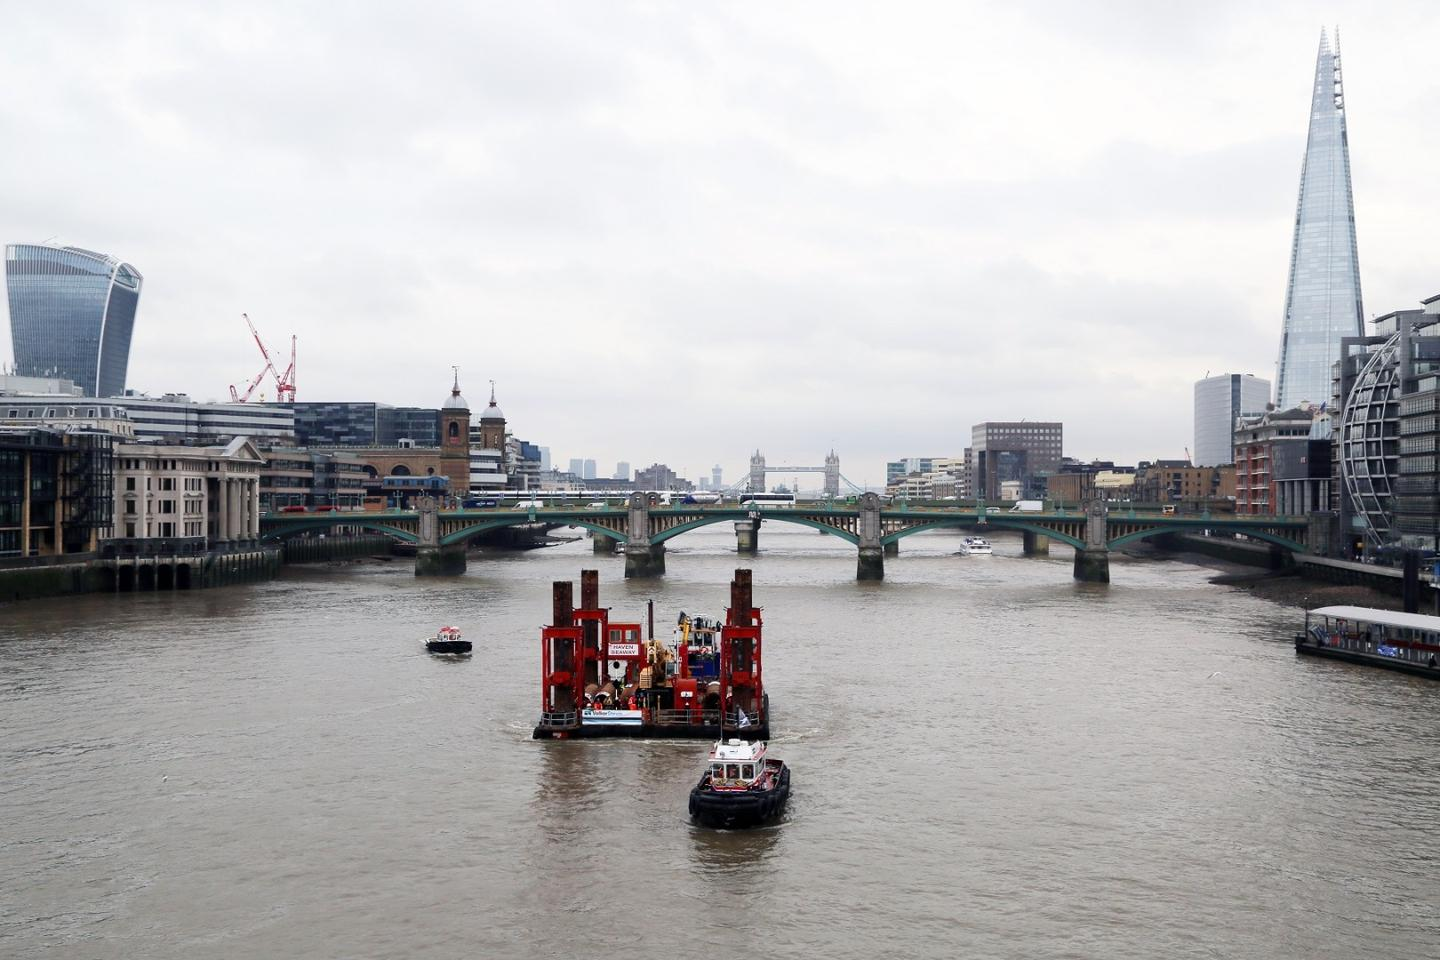 A crane has been moved into place at Blackfriars on the River Thames, signaling the start of work on the Thames Tideway Tunnel